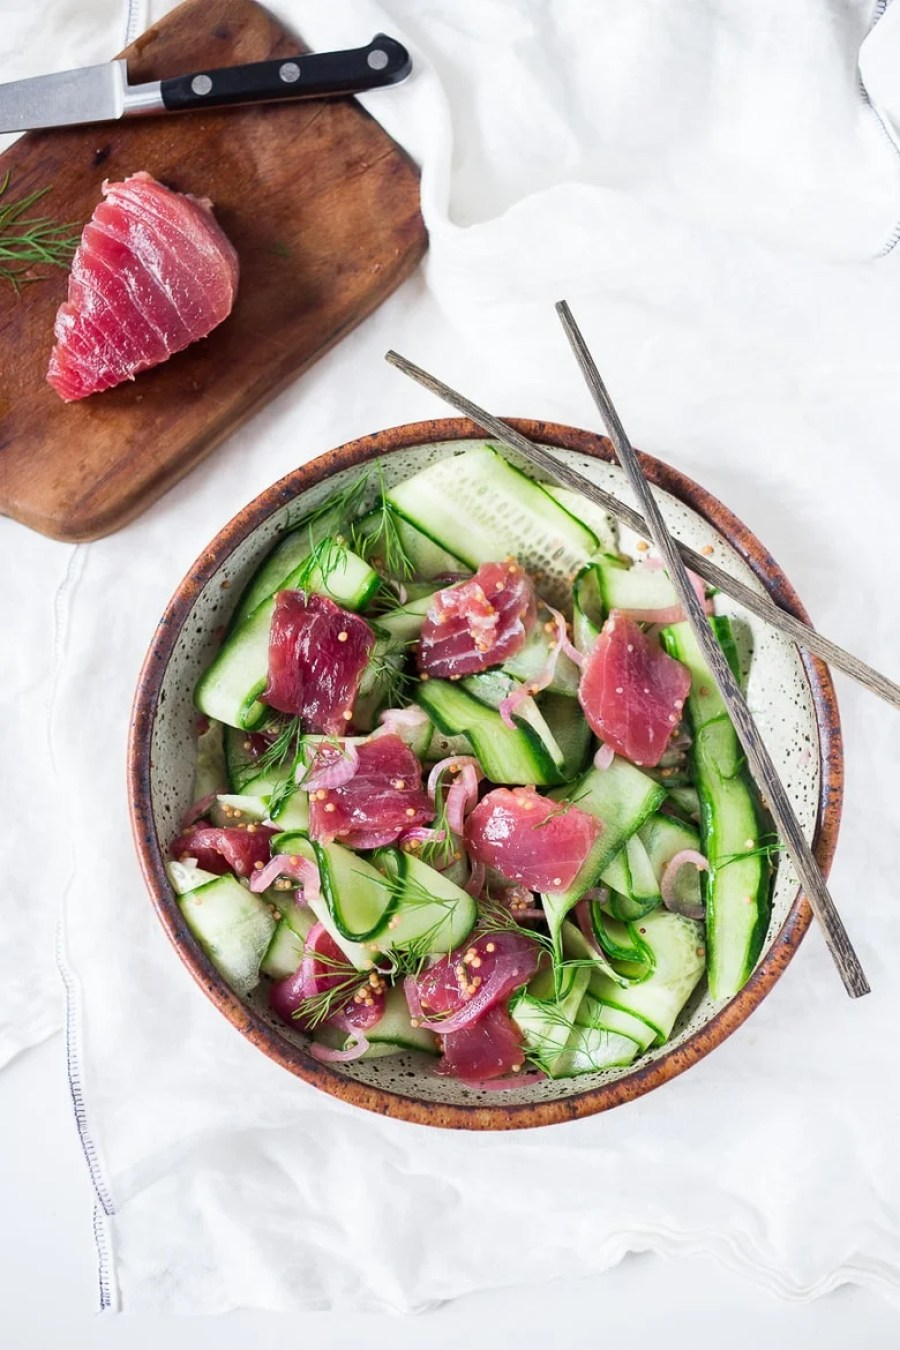 CUCUMBER AHI SALAD WITH PICKLED ONION, MUSTARD SEED & DILL